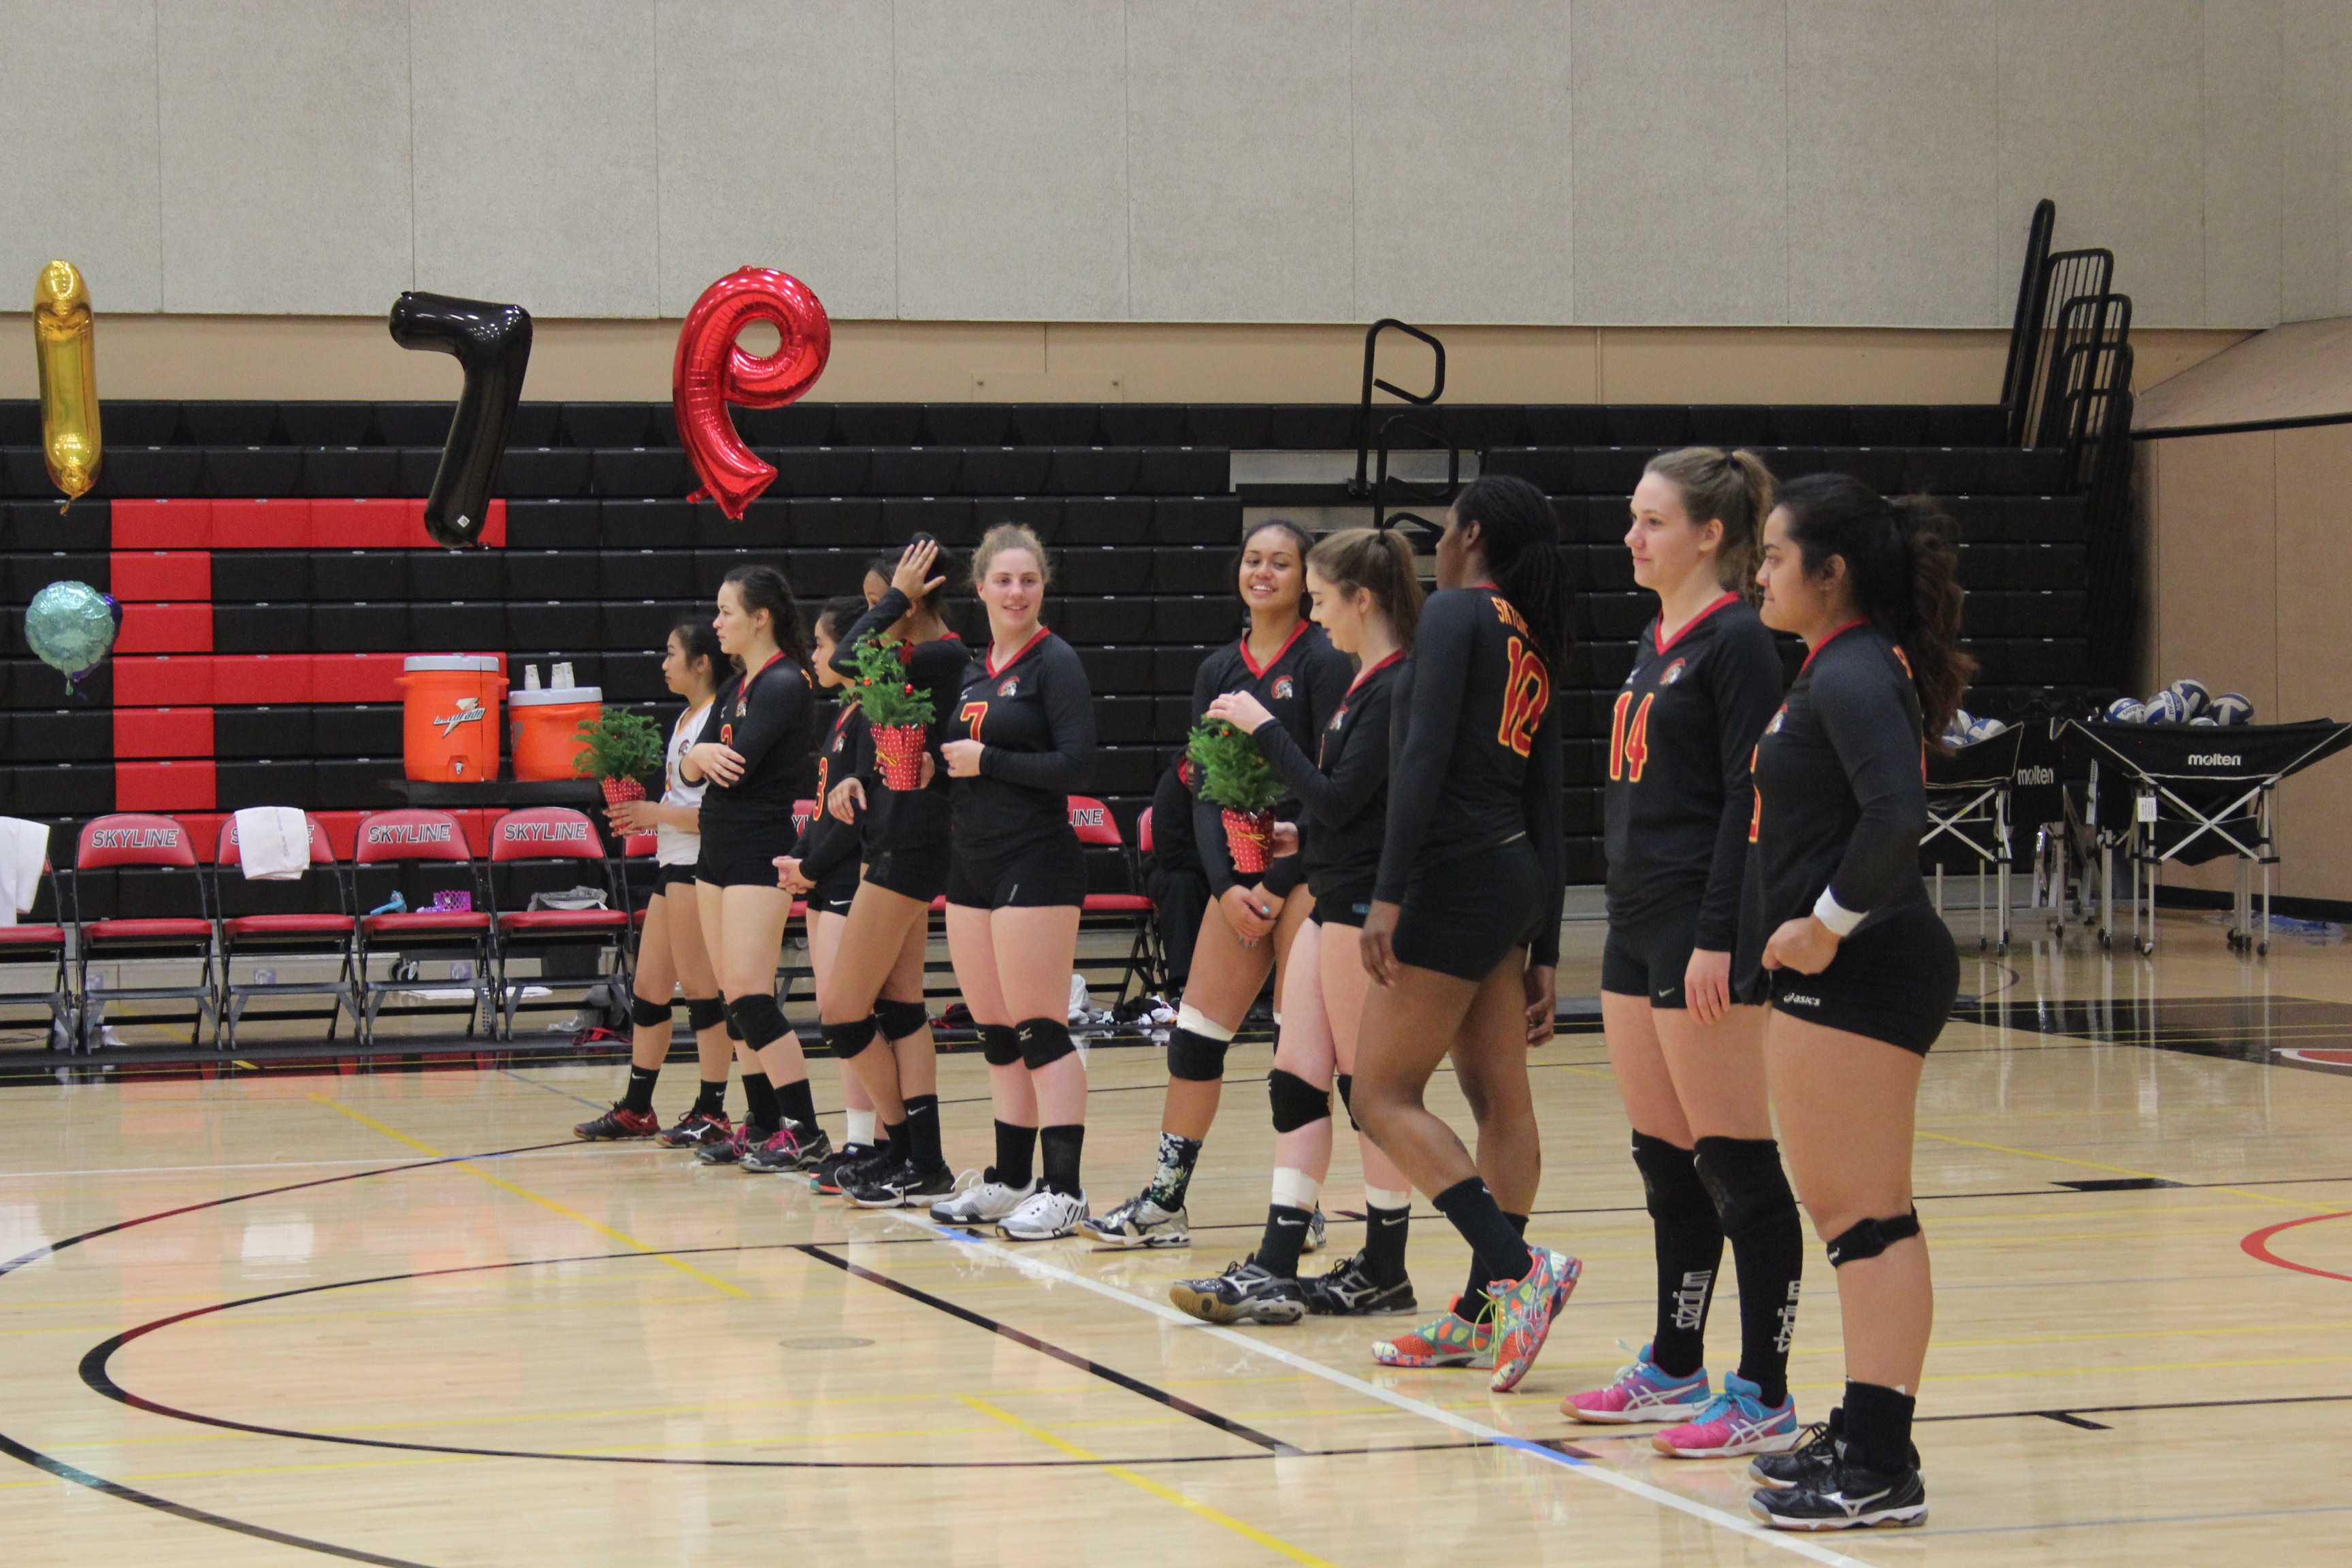 Skyline's volleyball team battled hard on the court all season while keeping an accumulated 3.7 GPA. Photo credit: Blynn Beltran